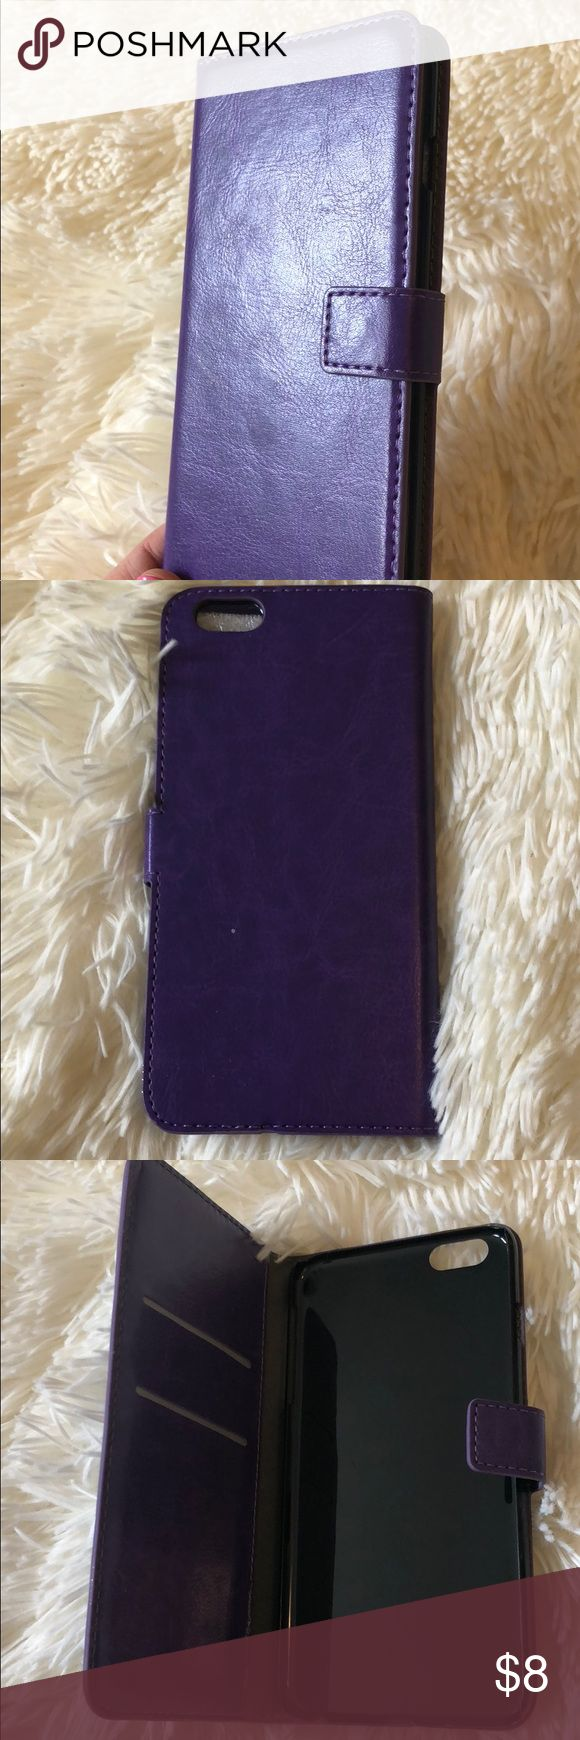 Purple iSavv iPhone 6 Plus Wallet Case Brand new, still in original packaging. Fits 6 plus only (due to 7+ and 8+ wider camera lens). Has magnetic tab closure and slots for two credit cards. Super fun purple color. Accessories Phone Cases